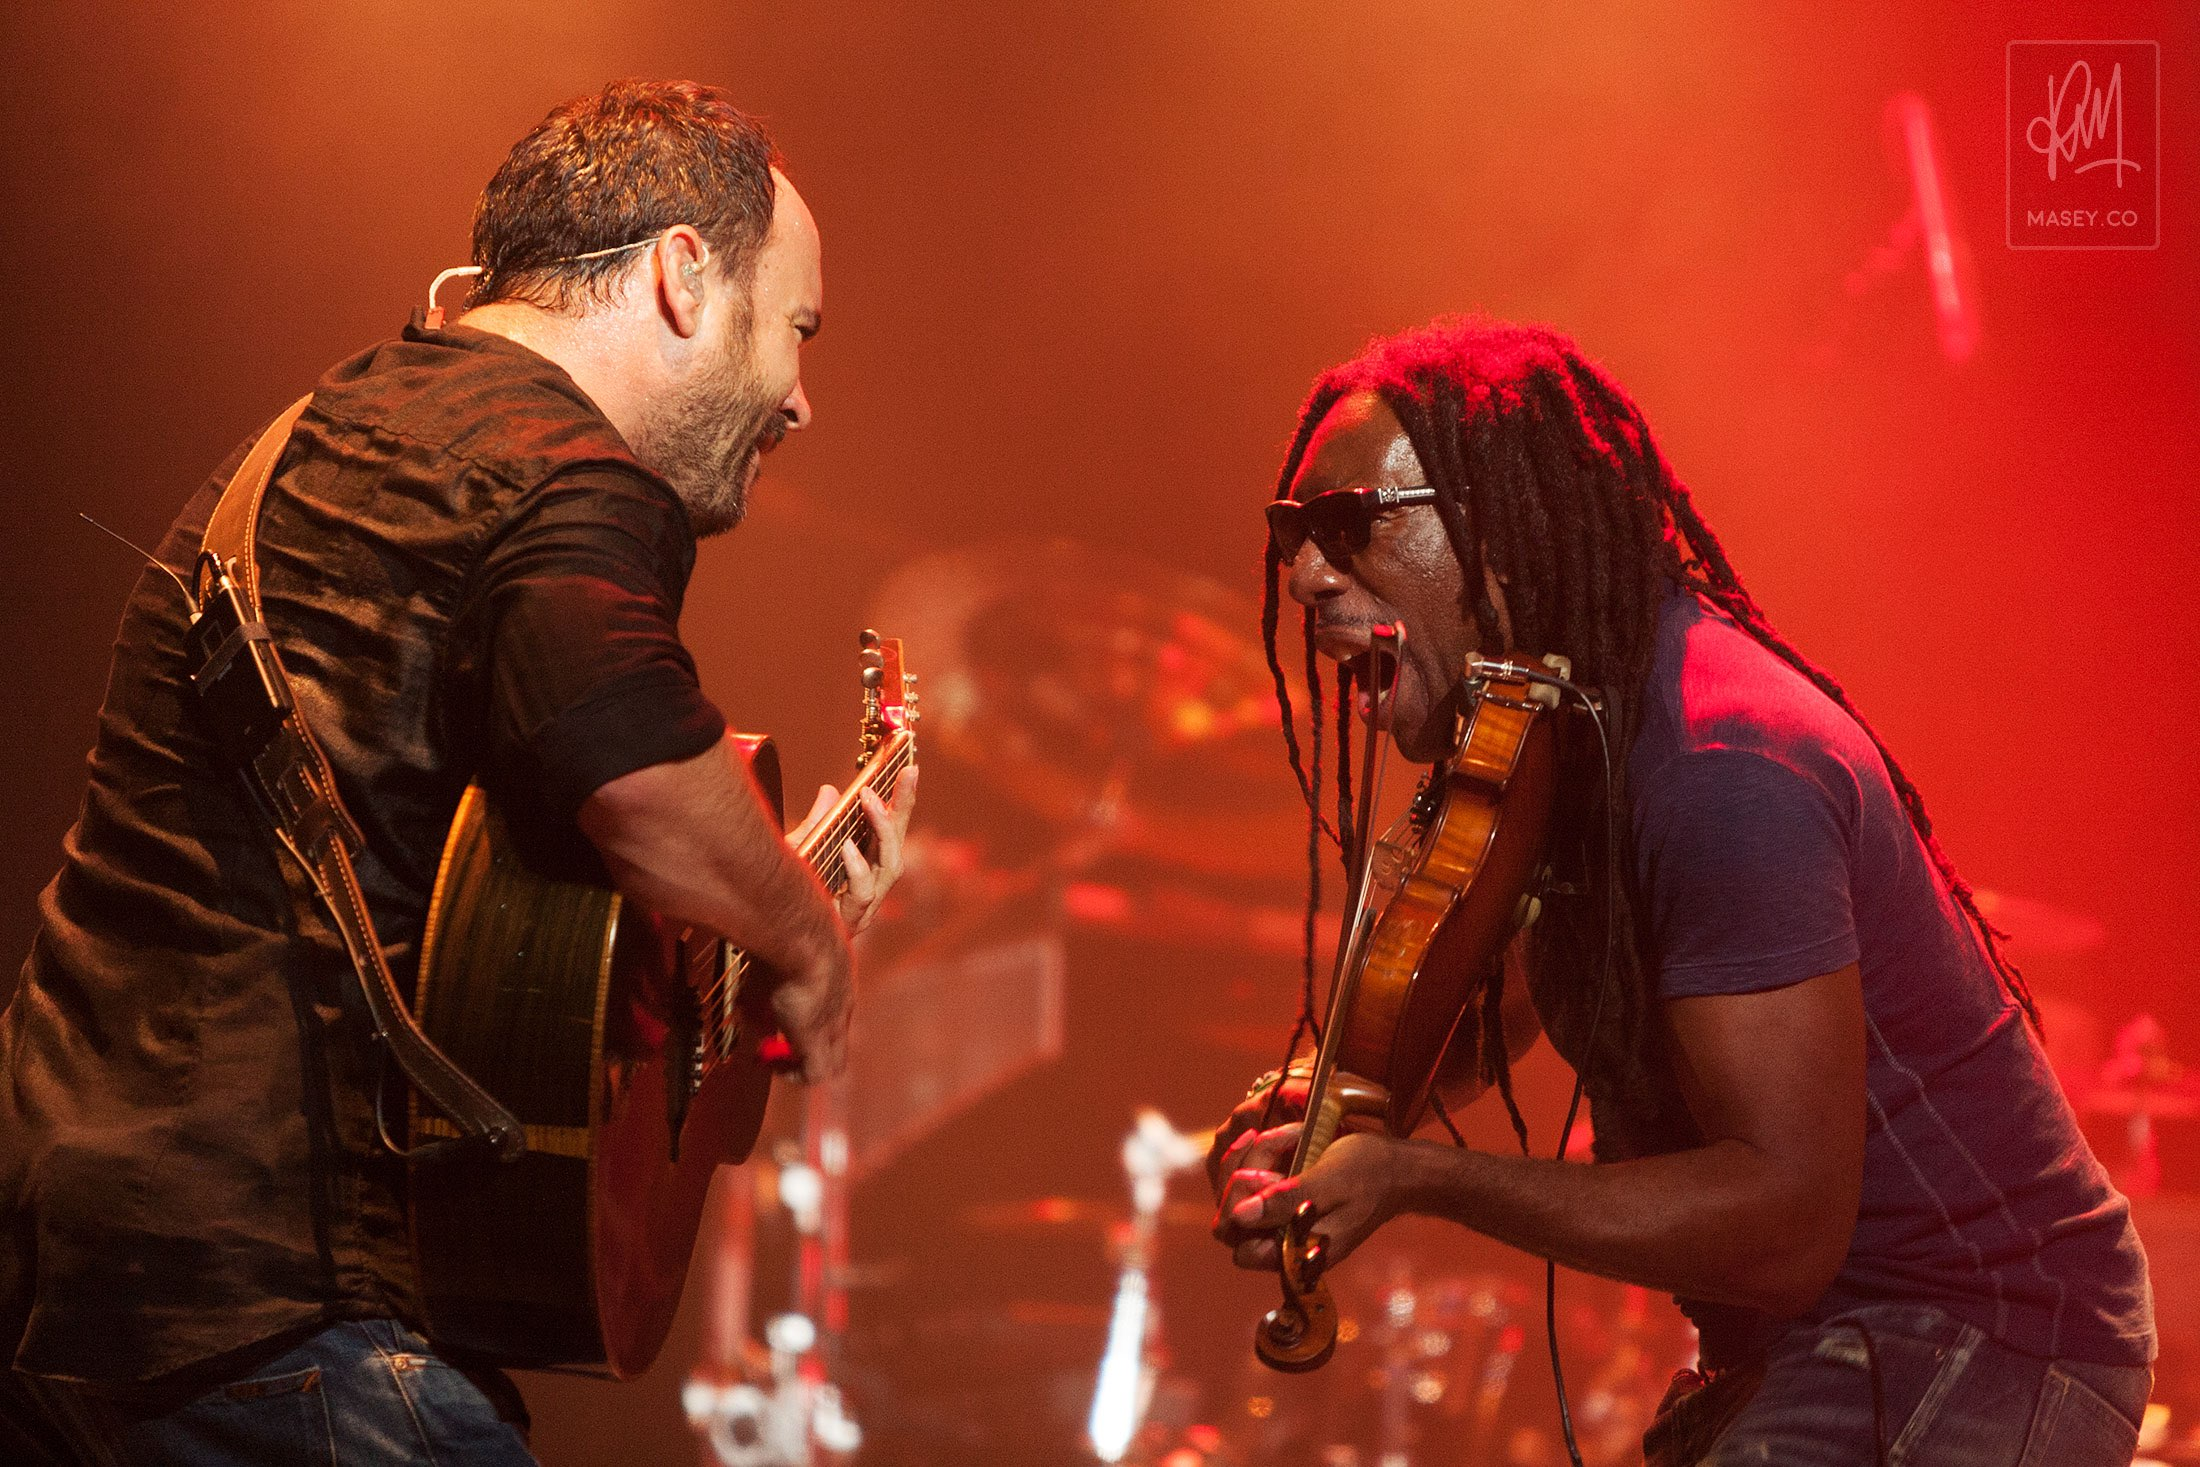 Dave Matthews Band at Byron Bay Bluesfest 2014